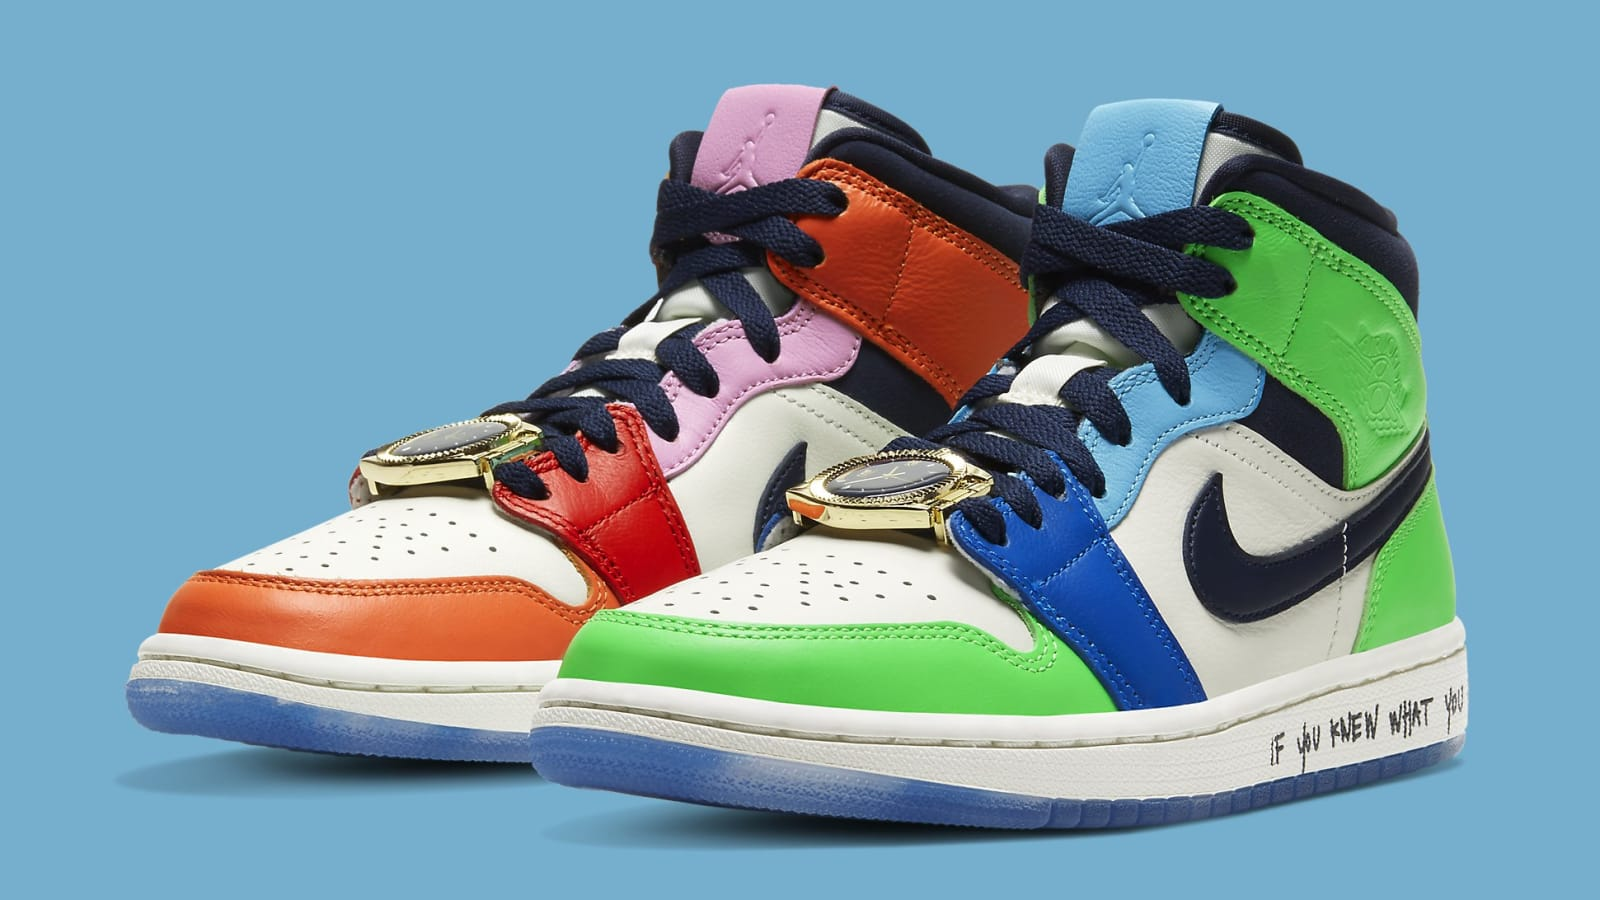 Melody Ehsani x Air Jordan 1 Mid Release Date Revealed: Official Images